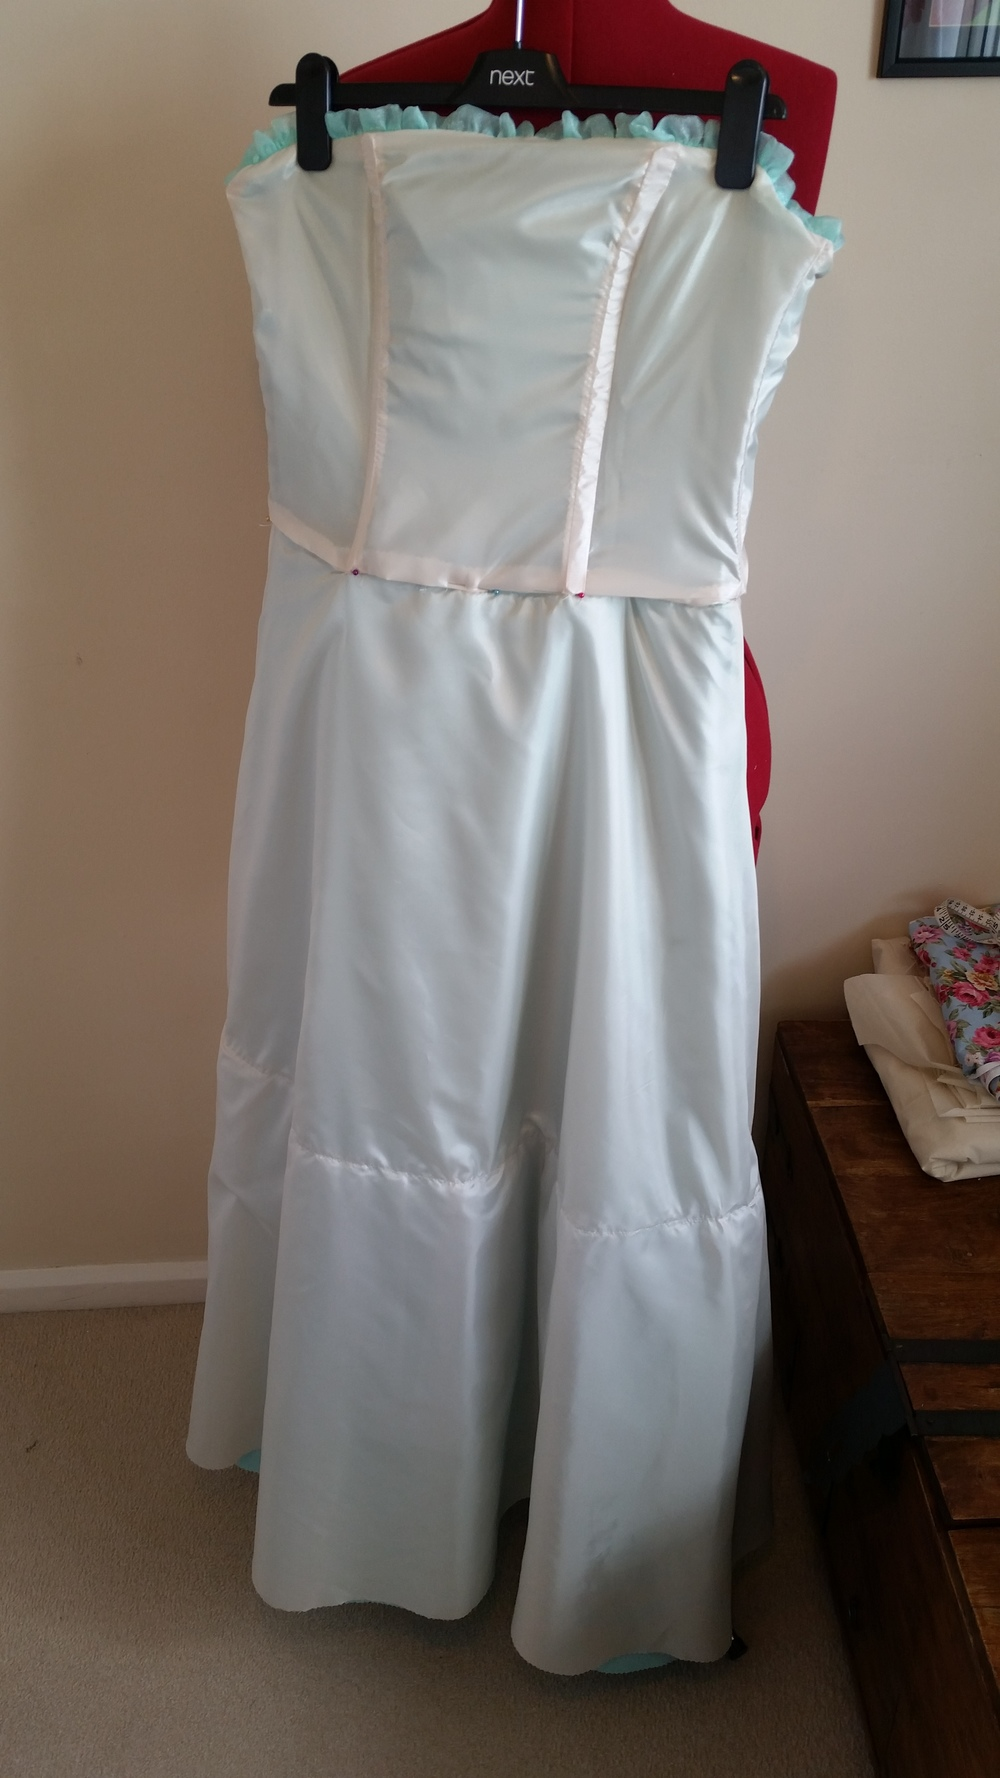 The dress inside out. The stitching line on the skirt is where the ruffle is sewn in to give the dress more flare at the bottom.